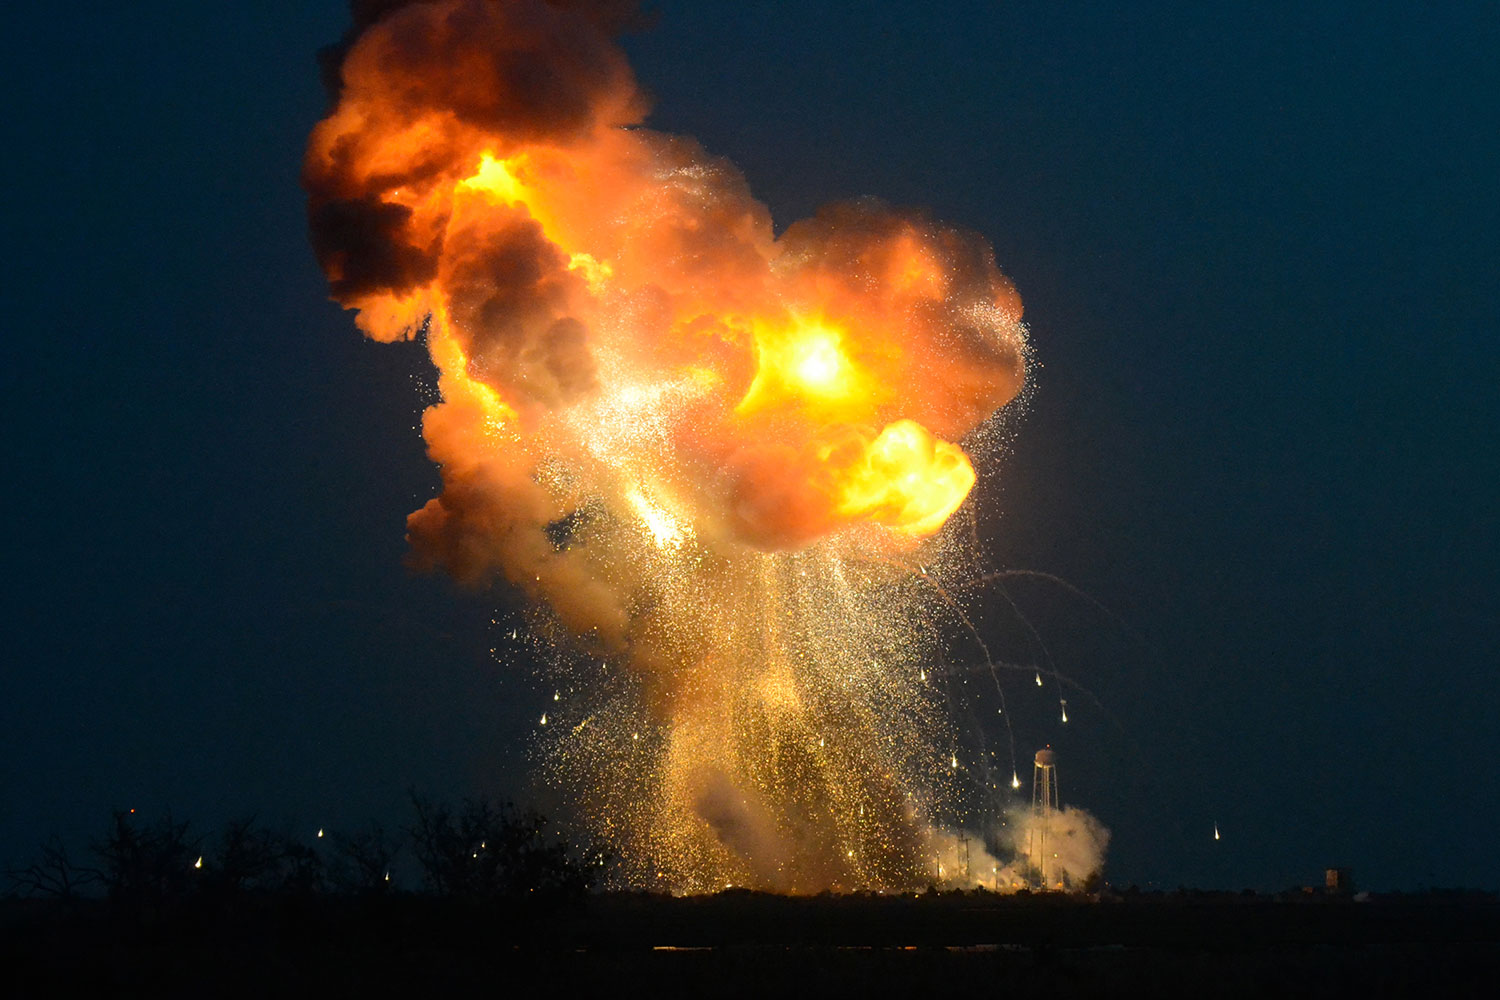 Seconds after liftoff, the ORB-3 Antares rocket fell near the launch pad due to an apparent failure in the turbopump supplying fuel to one of the two first-stage engines. Range Safety Officers engaged the Flight Termination System to stop the remaining engine. Credit: Elliot Severn